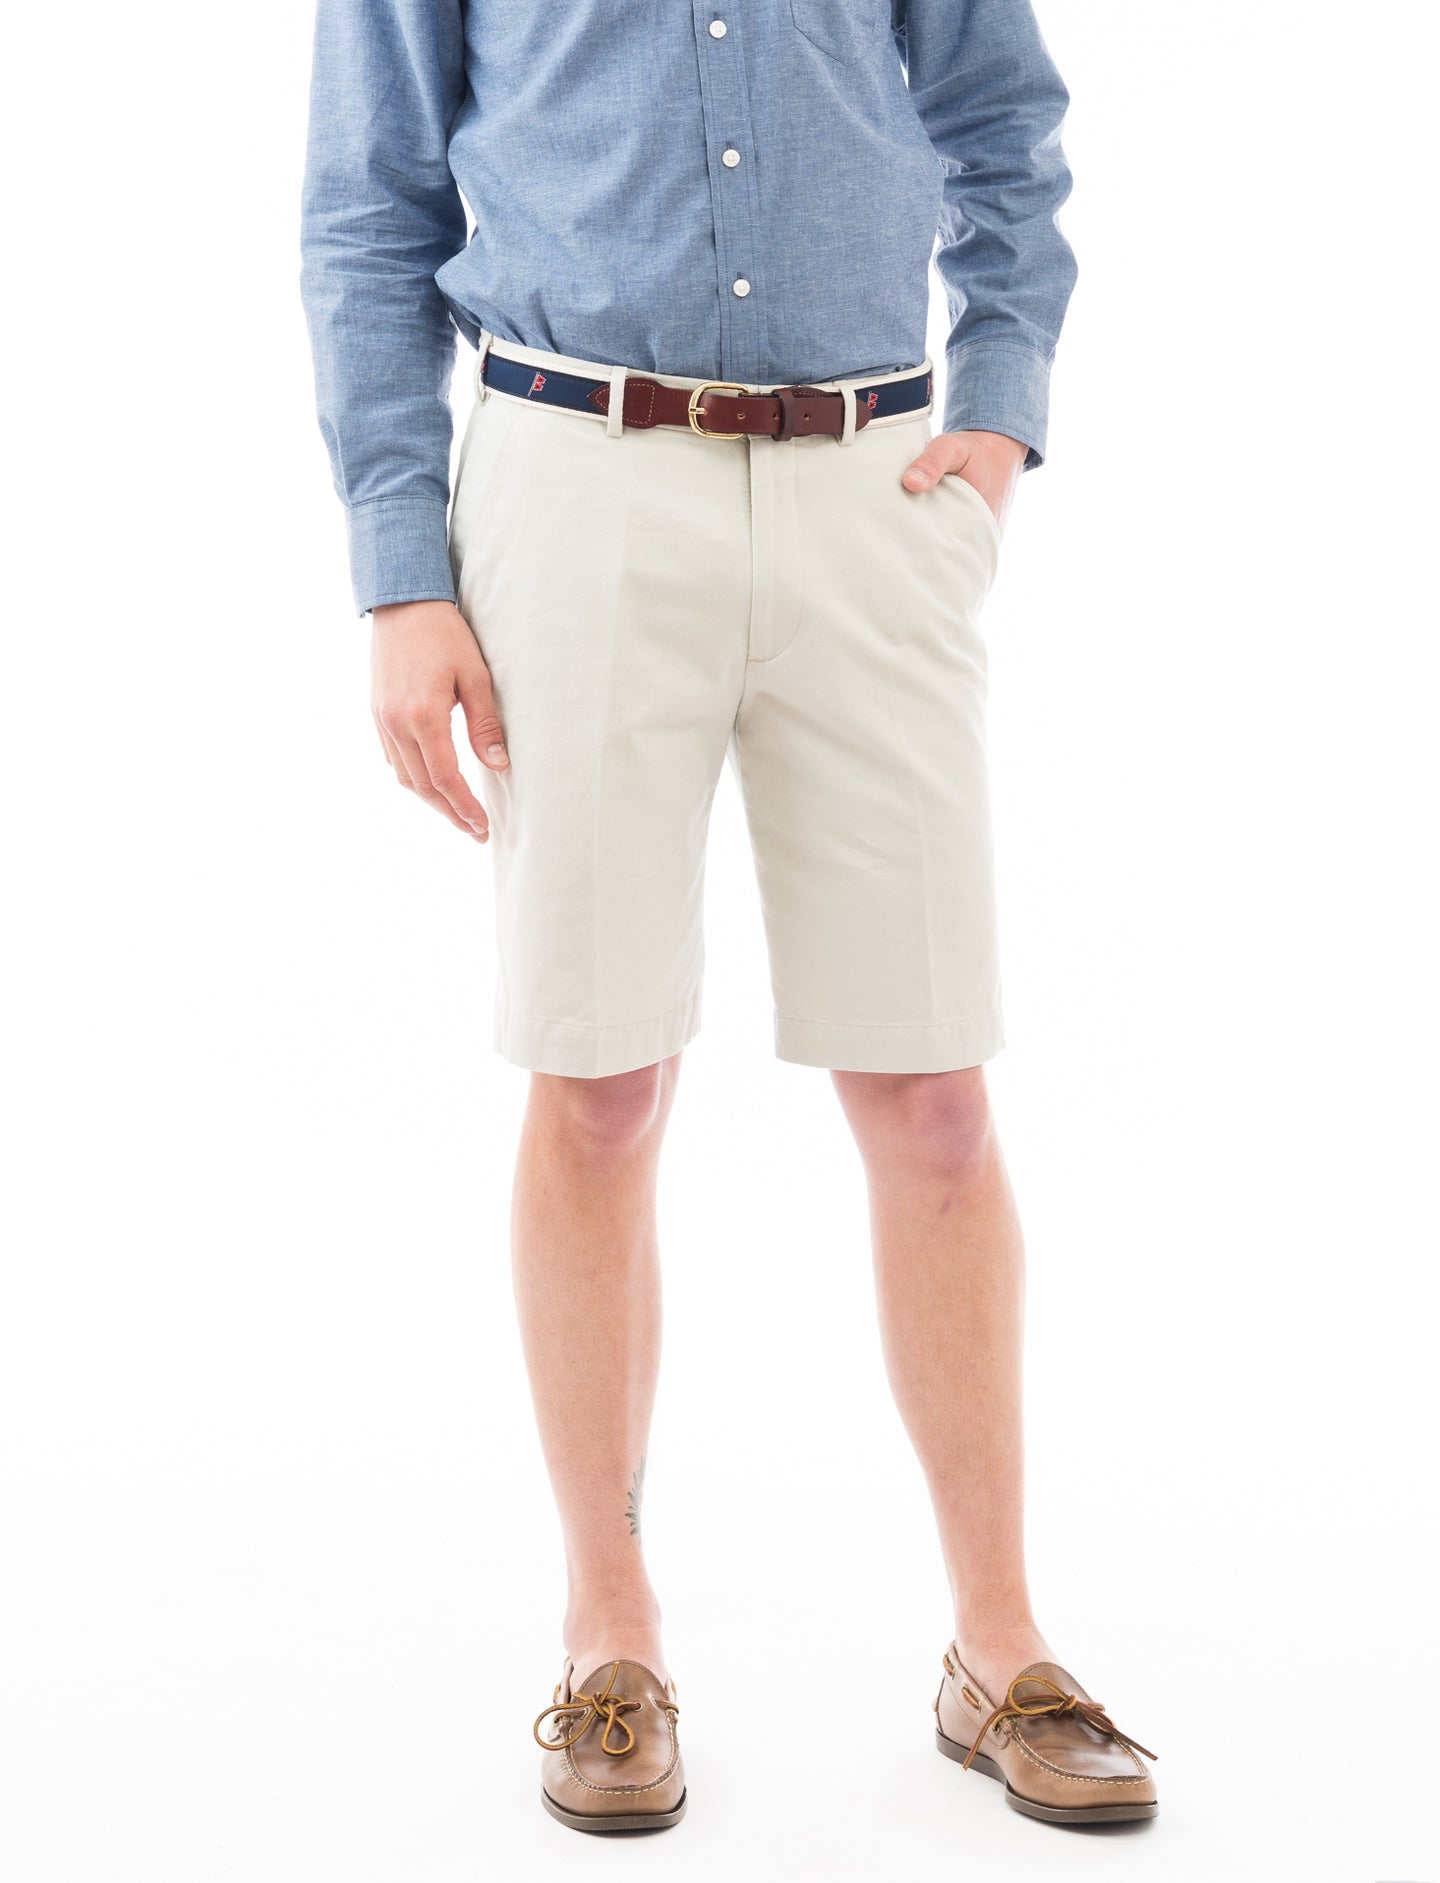 Chatham Chino Signature Short: Stone